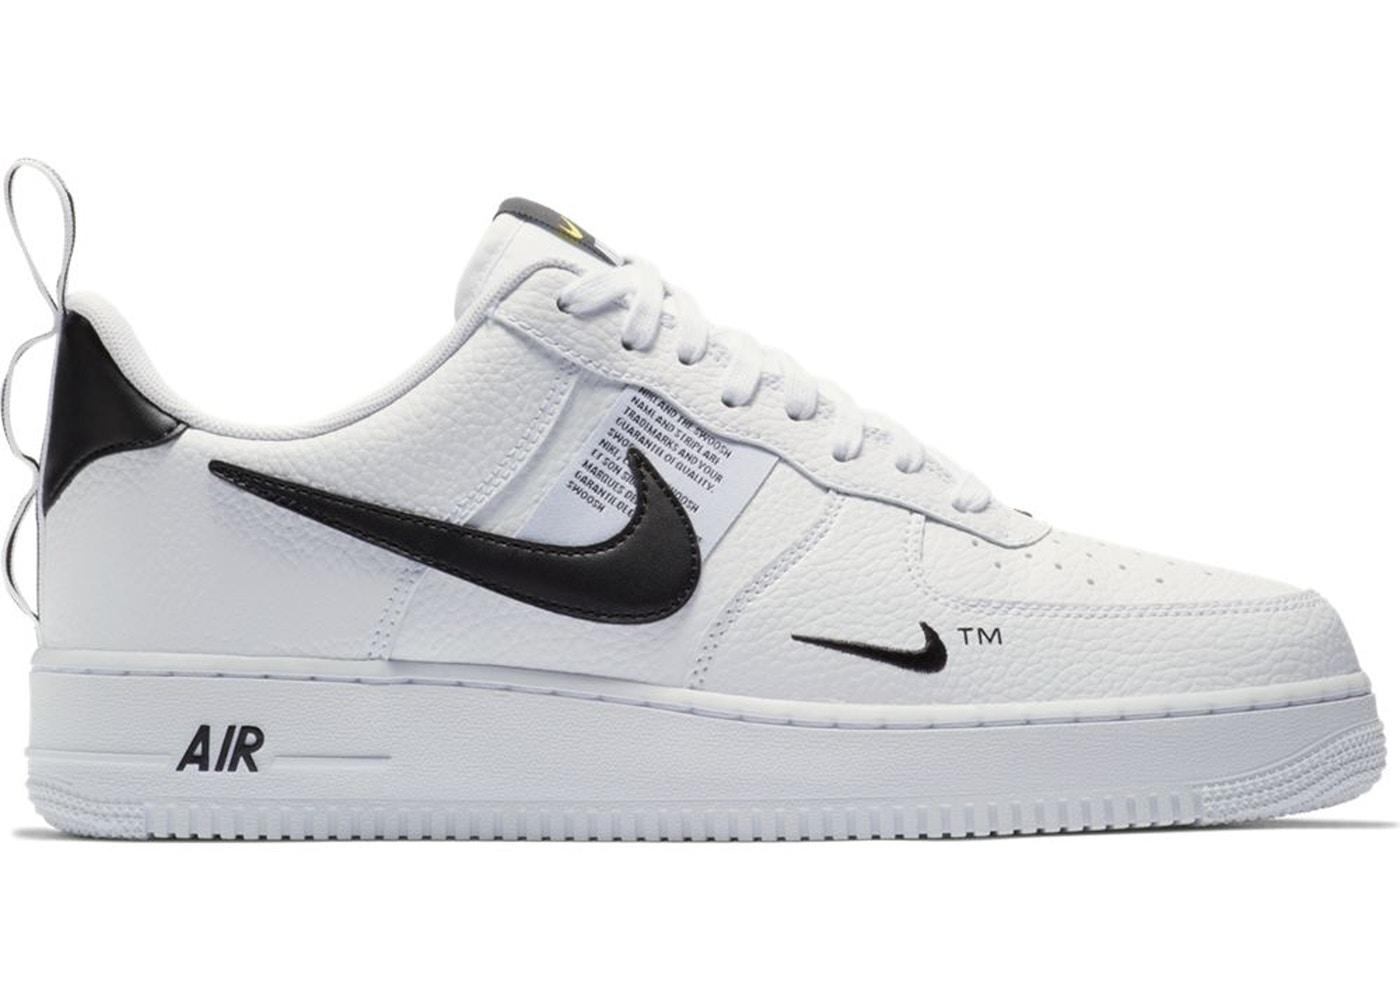 5bcda6f2386d Air Force 1 Low Utility White Black (GS) - AR1708-100